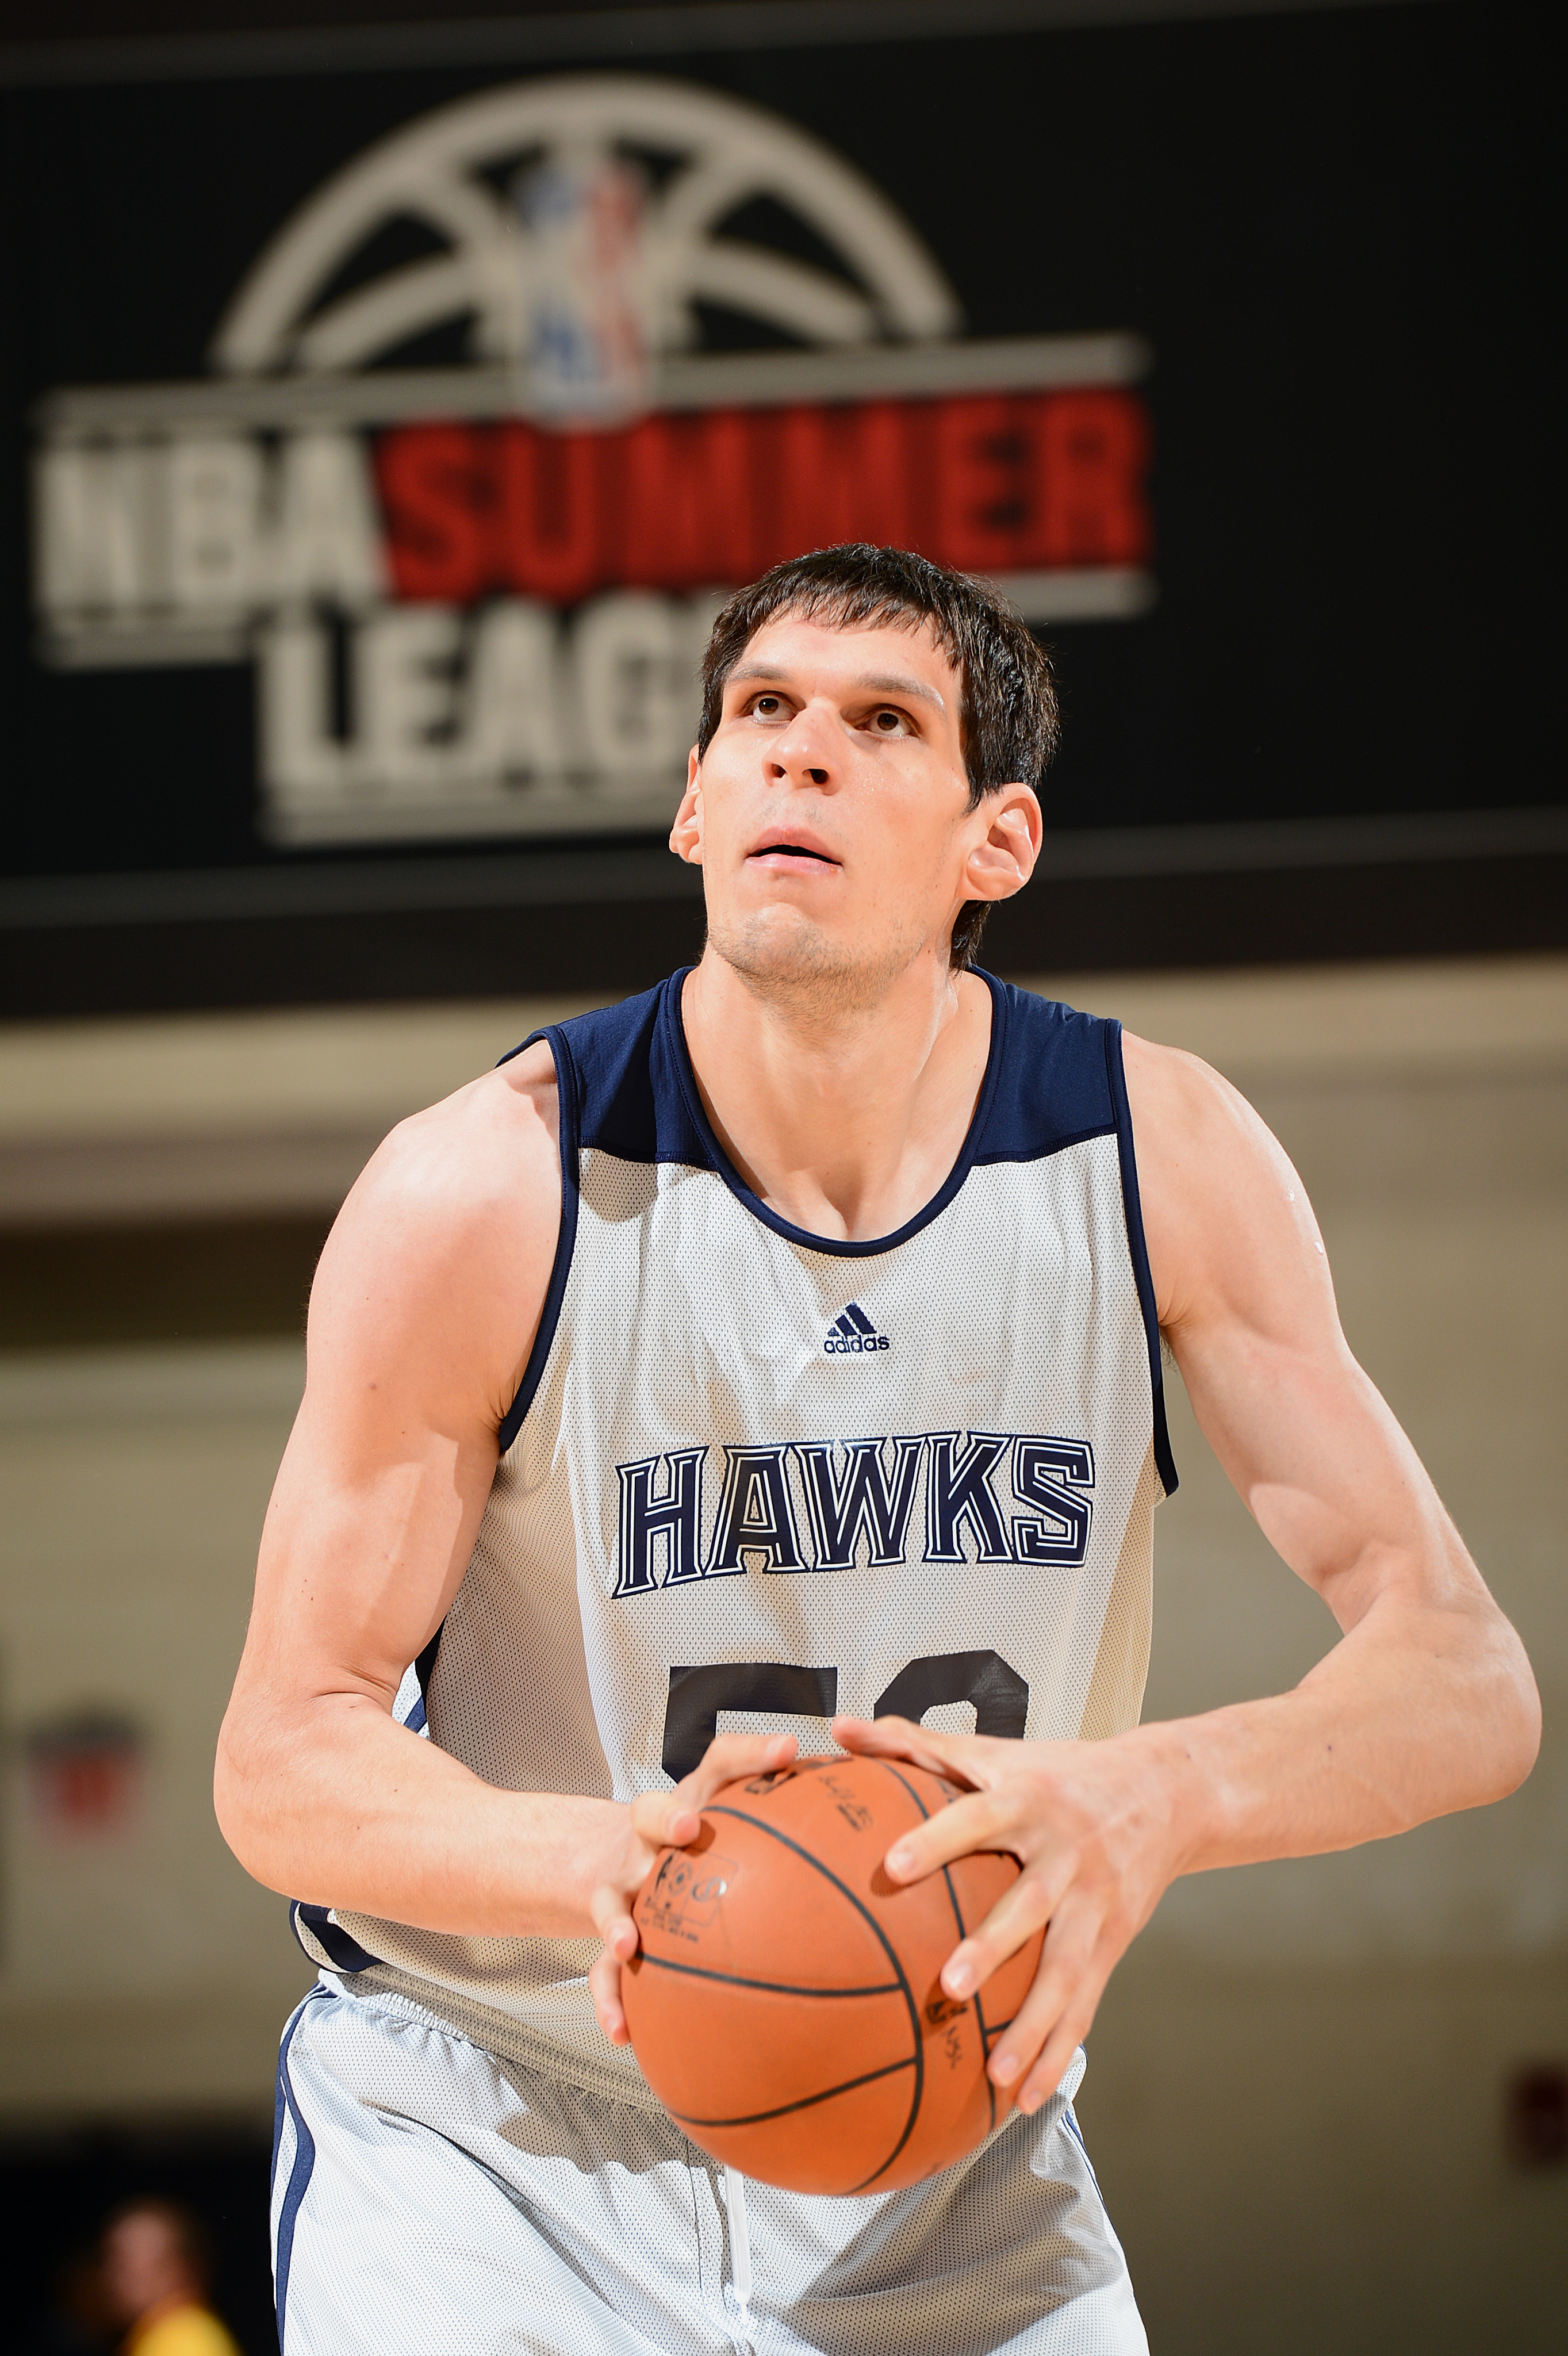 LAS VEGAS, NV - JULY 15: Boban Marjanovic #50 of the Atlanta Hawks goes to shoot the ball against the San Antonio Spurs during NBA Summer League on July 15, 2013 at the Cox Pavilion in Las Vegas, Nevada. (Photo by Garrett W. Ellwood/NBAE via Getty Images)